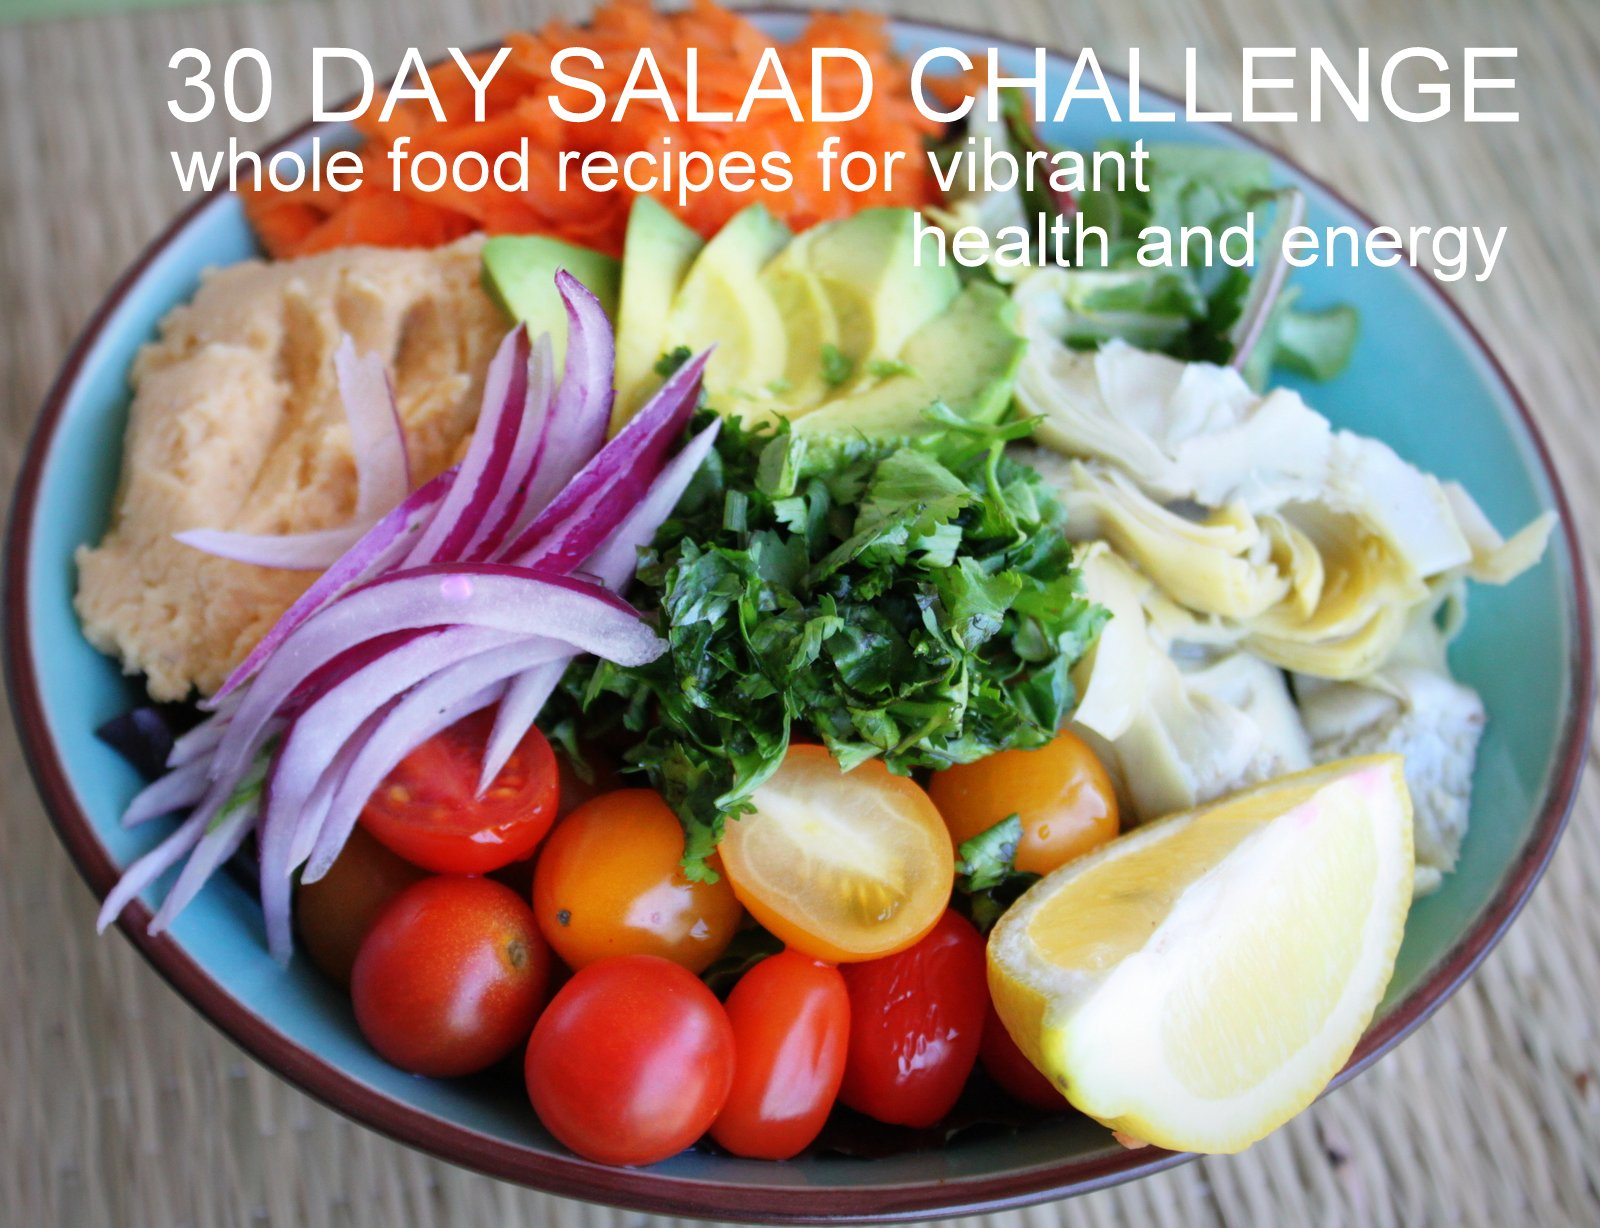 30 day salad challenge e book whole food recipes for vibrant health 30 day salad challenge e book forumfinder Images